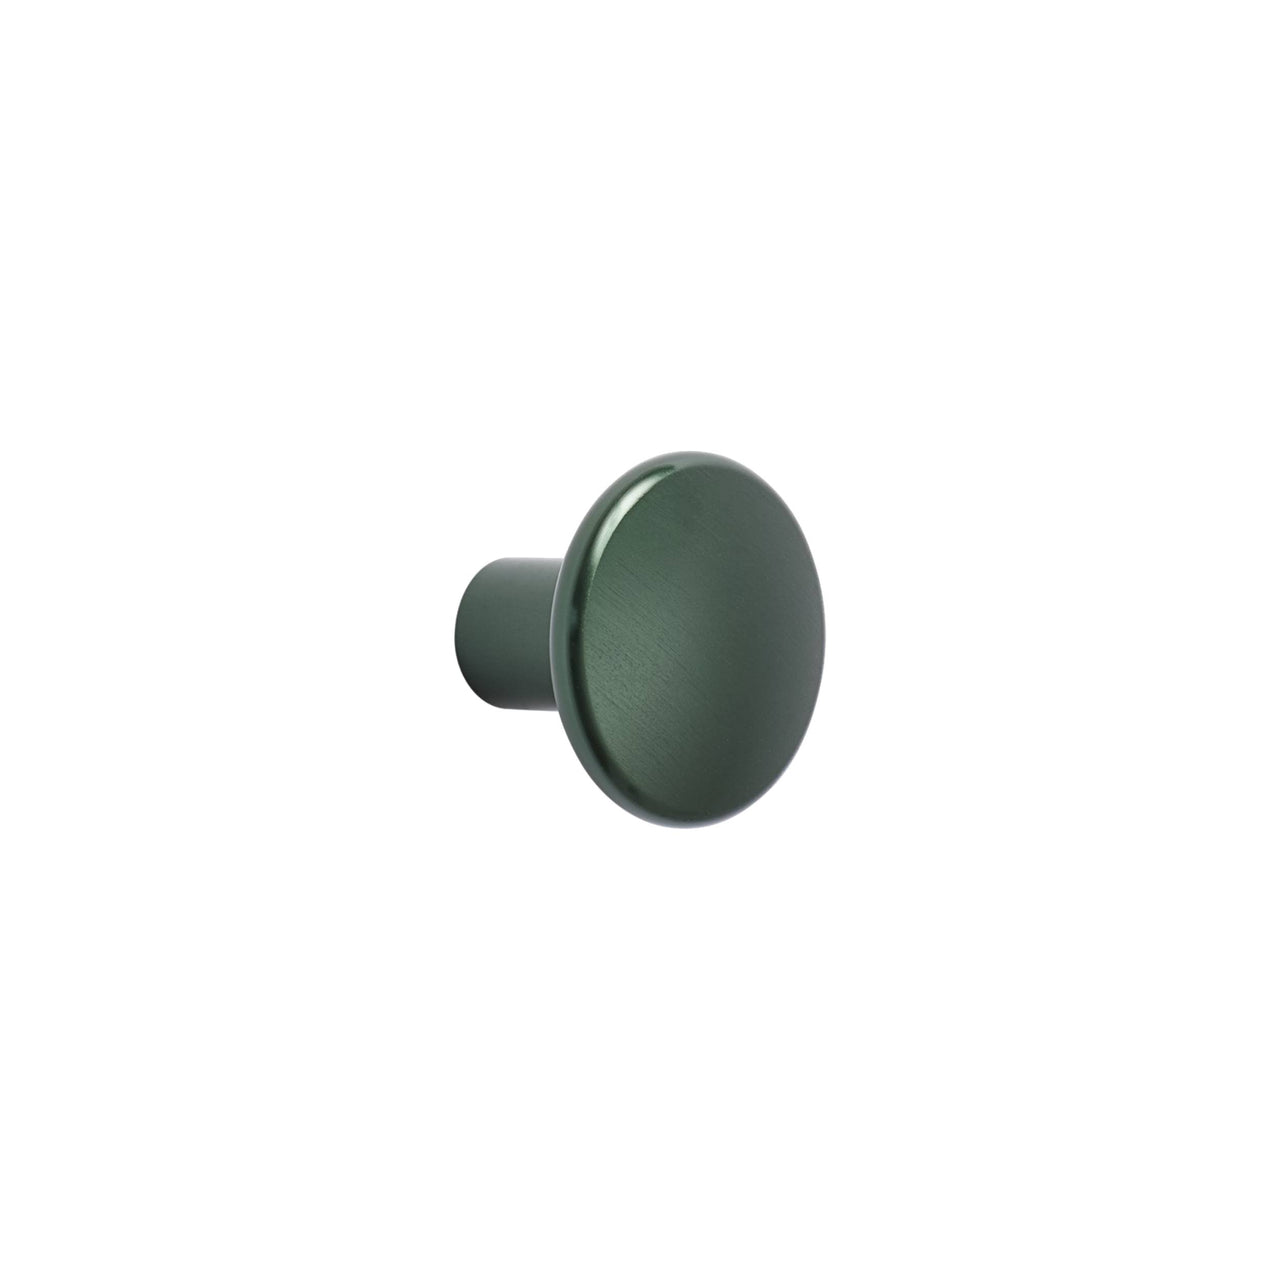 The Dots Metal Coat Hooks: Small Single Dot + Dark Green